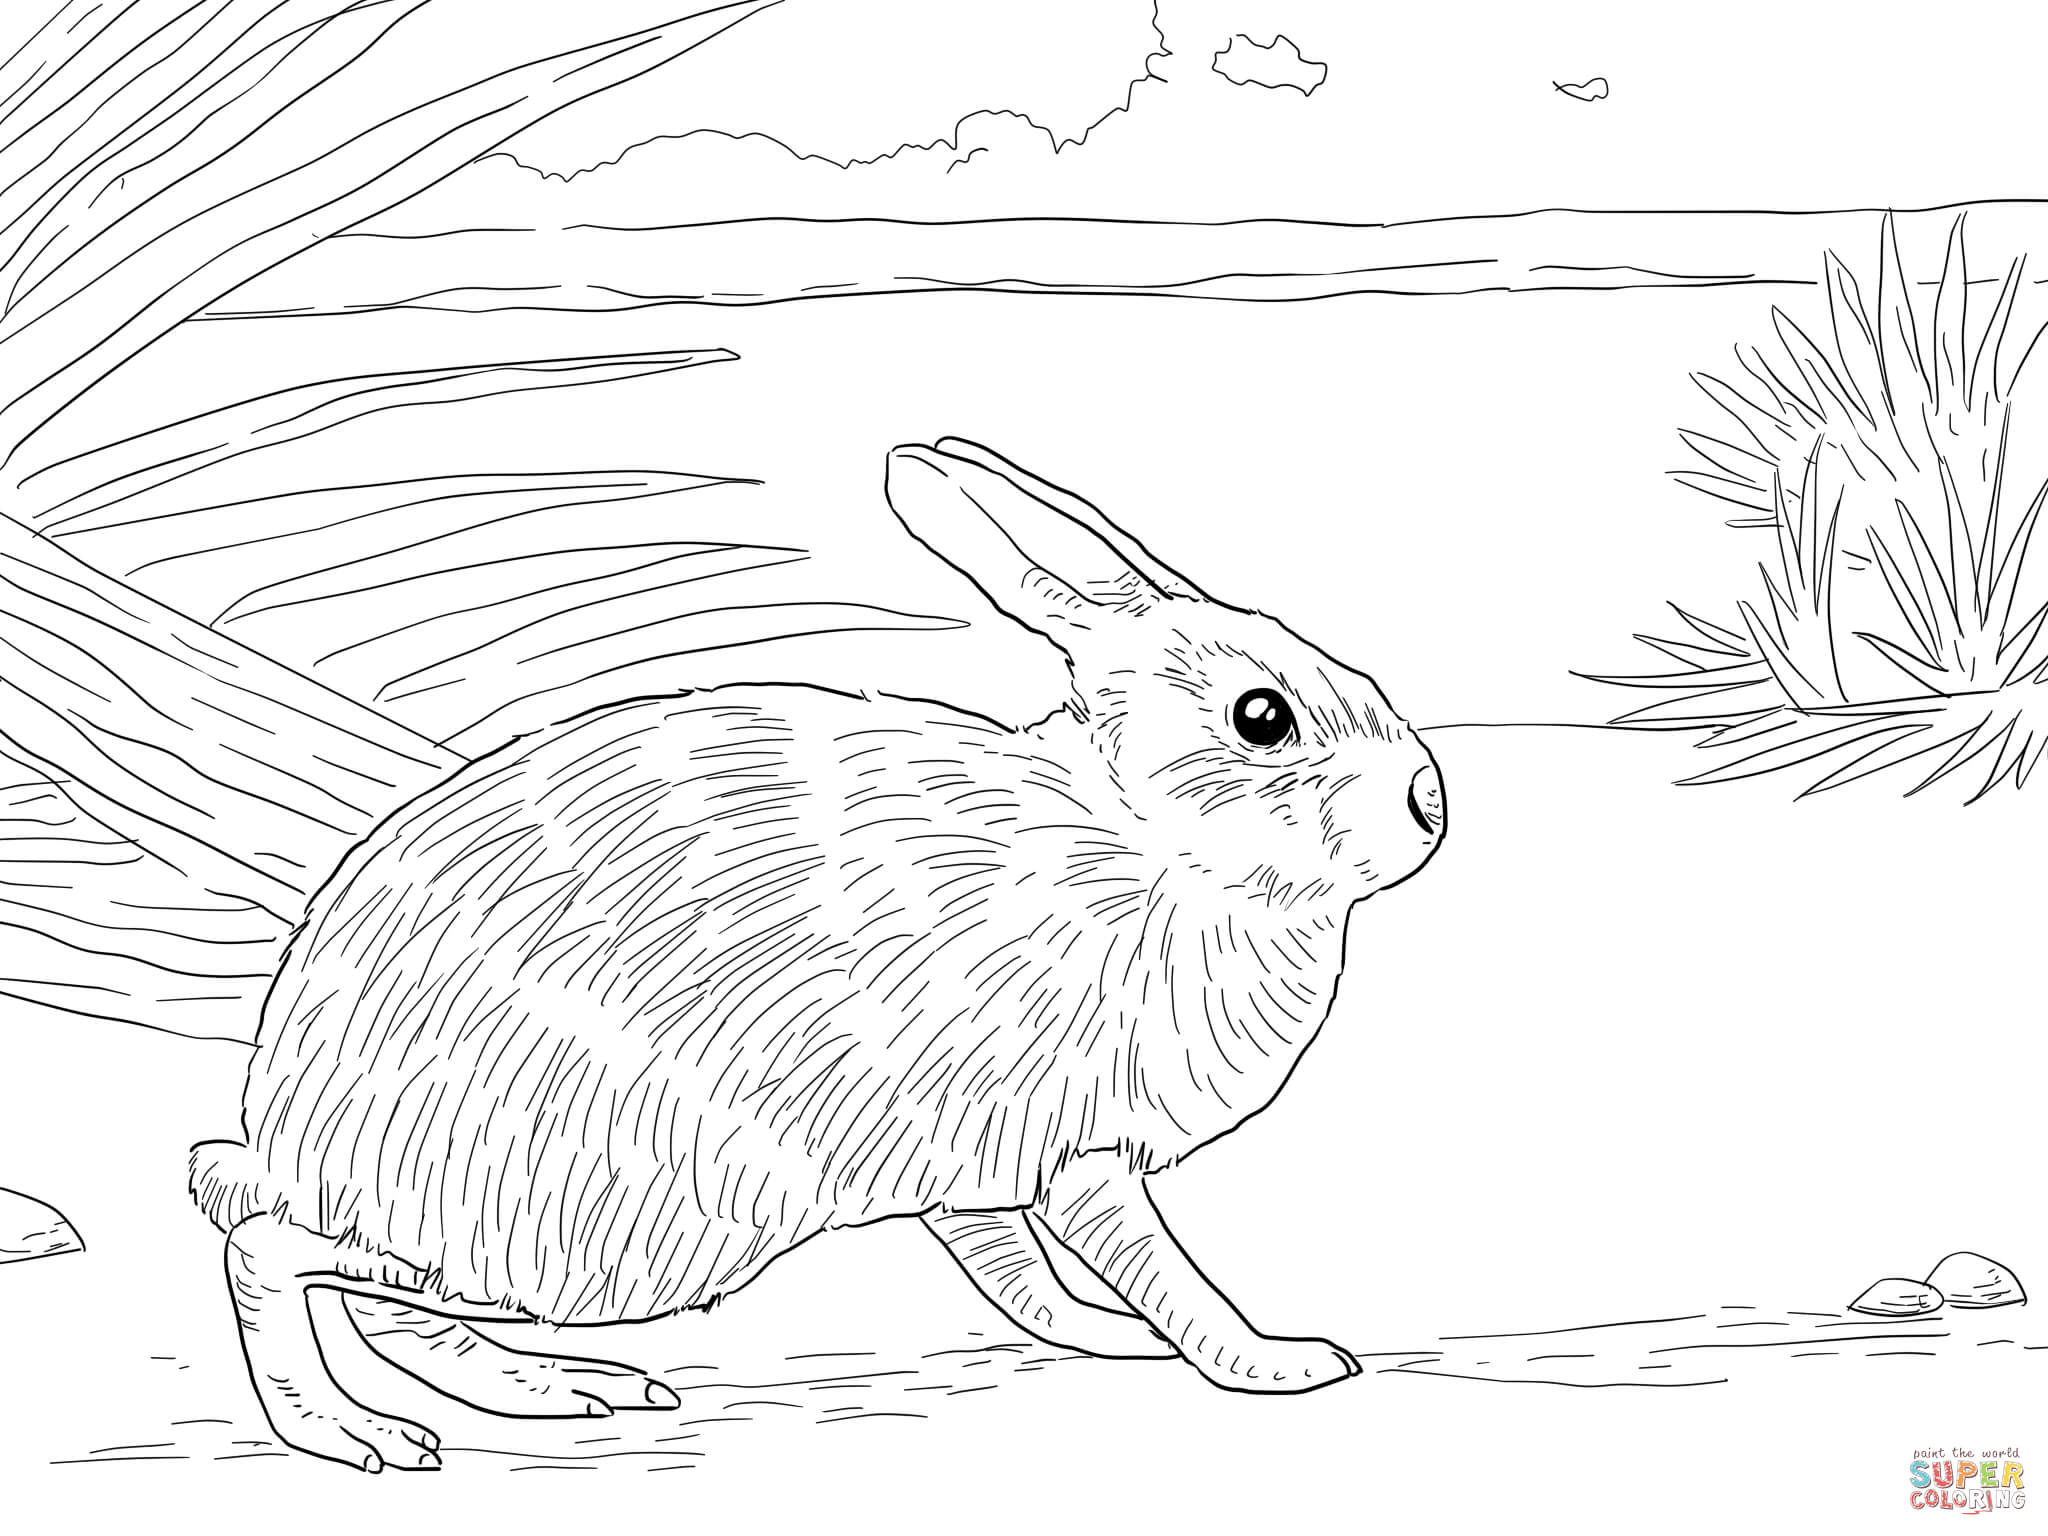 2048x1536 Hare Animal Coloring Pages California Jack Rabbit